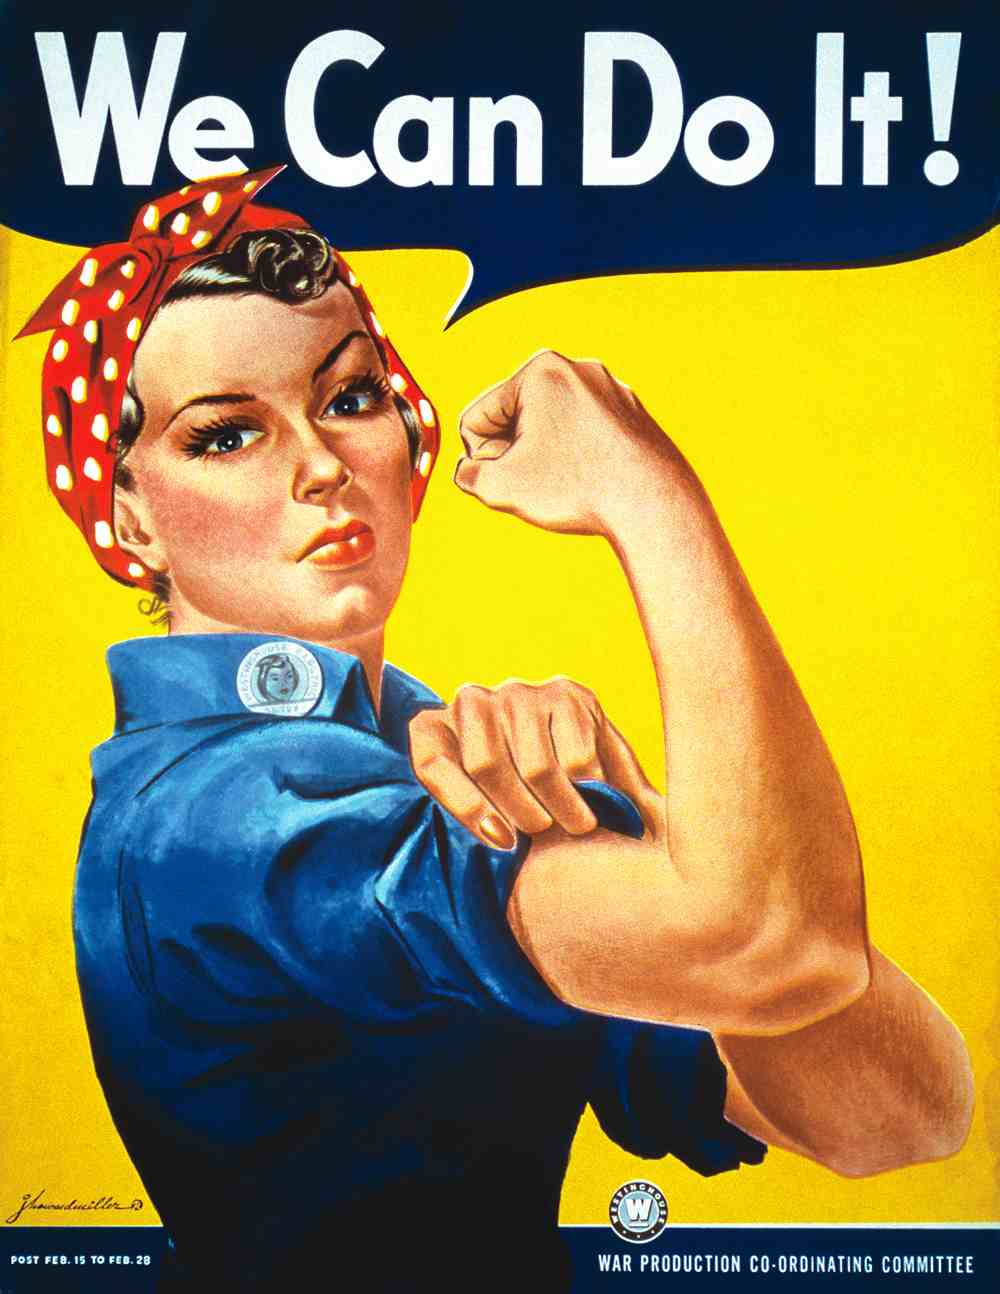 This poster by J. Howard Miller has been serving as a cultural icon of feminism since 1942.